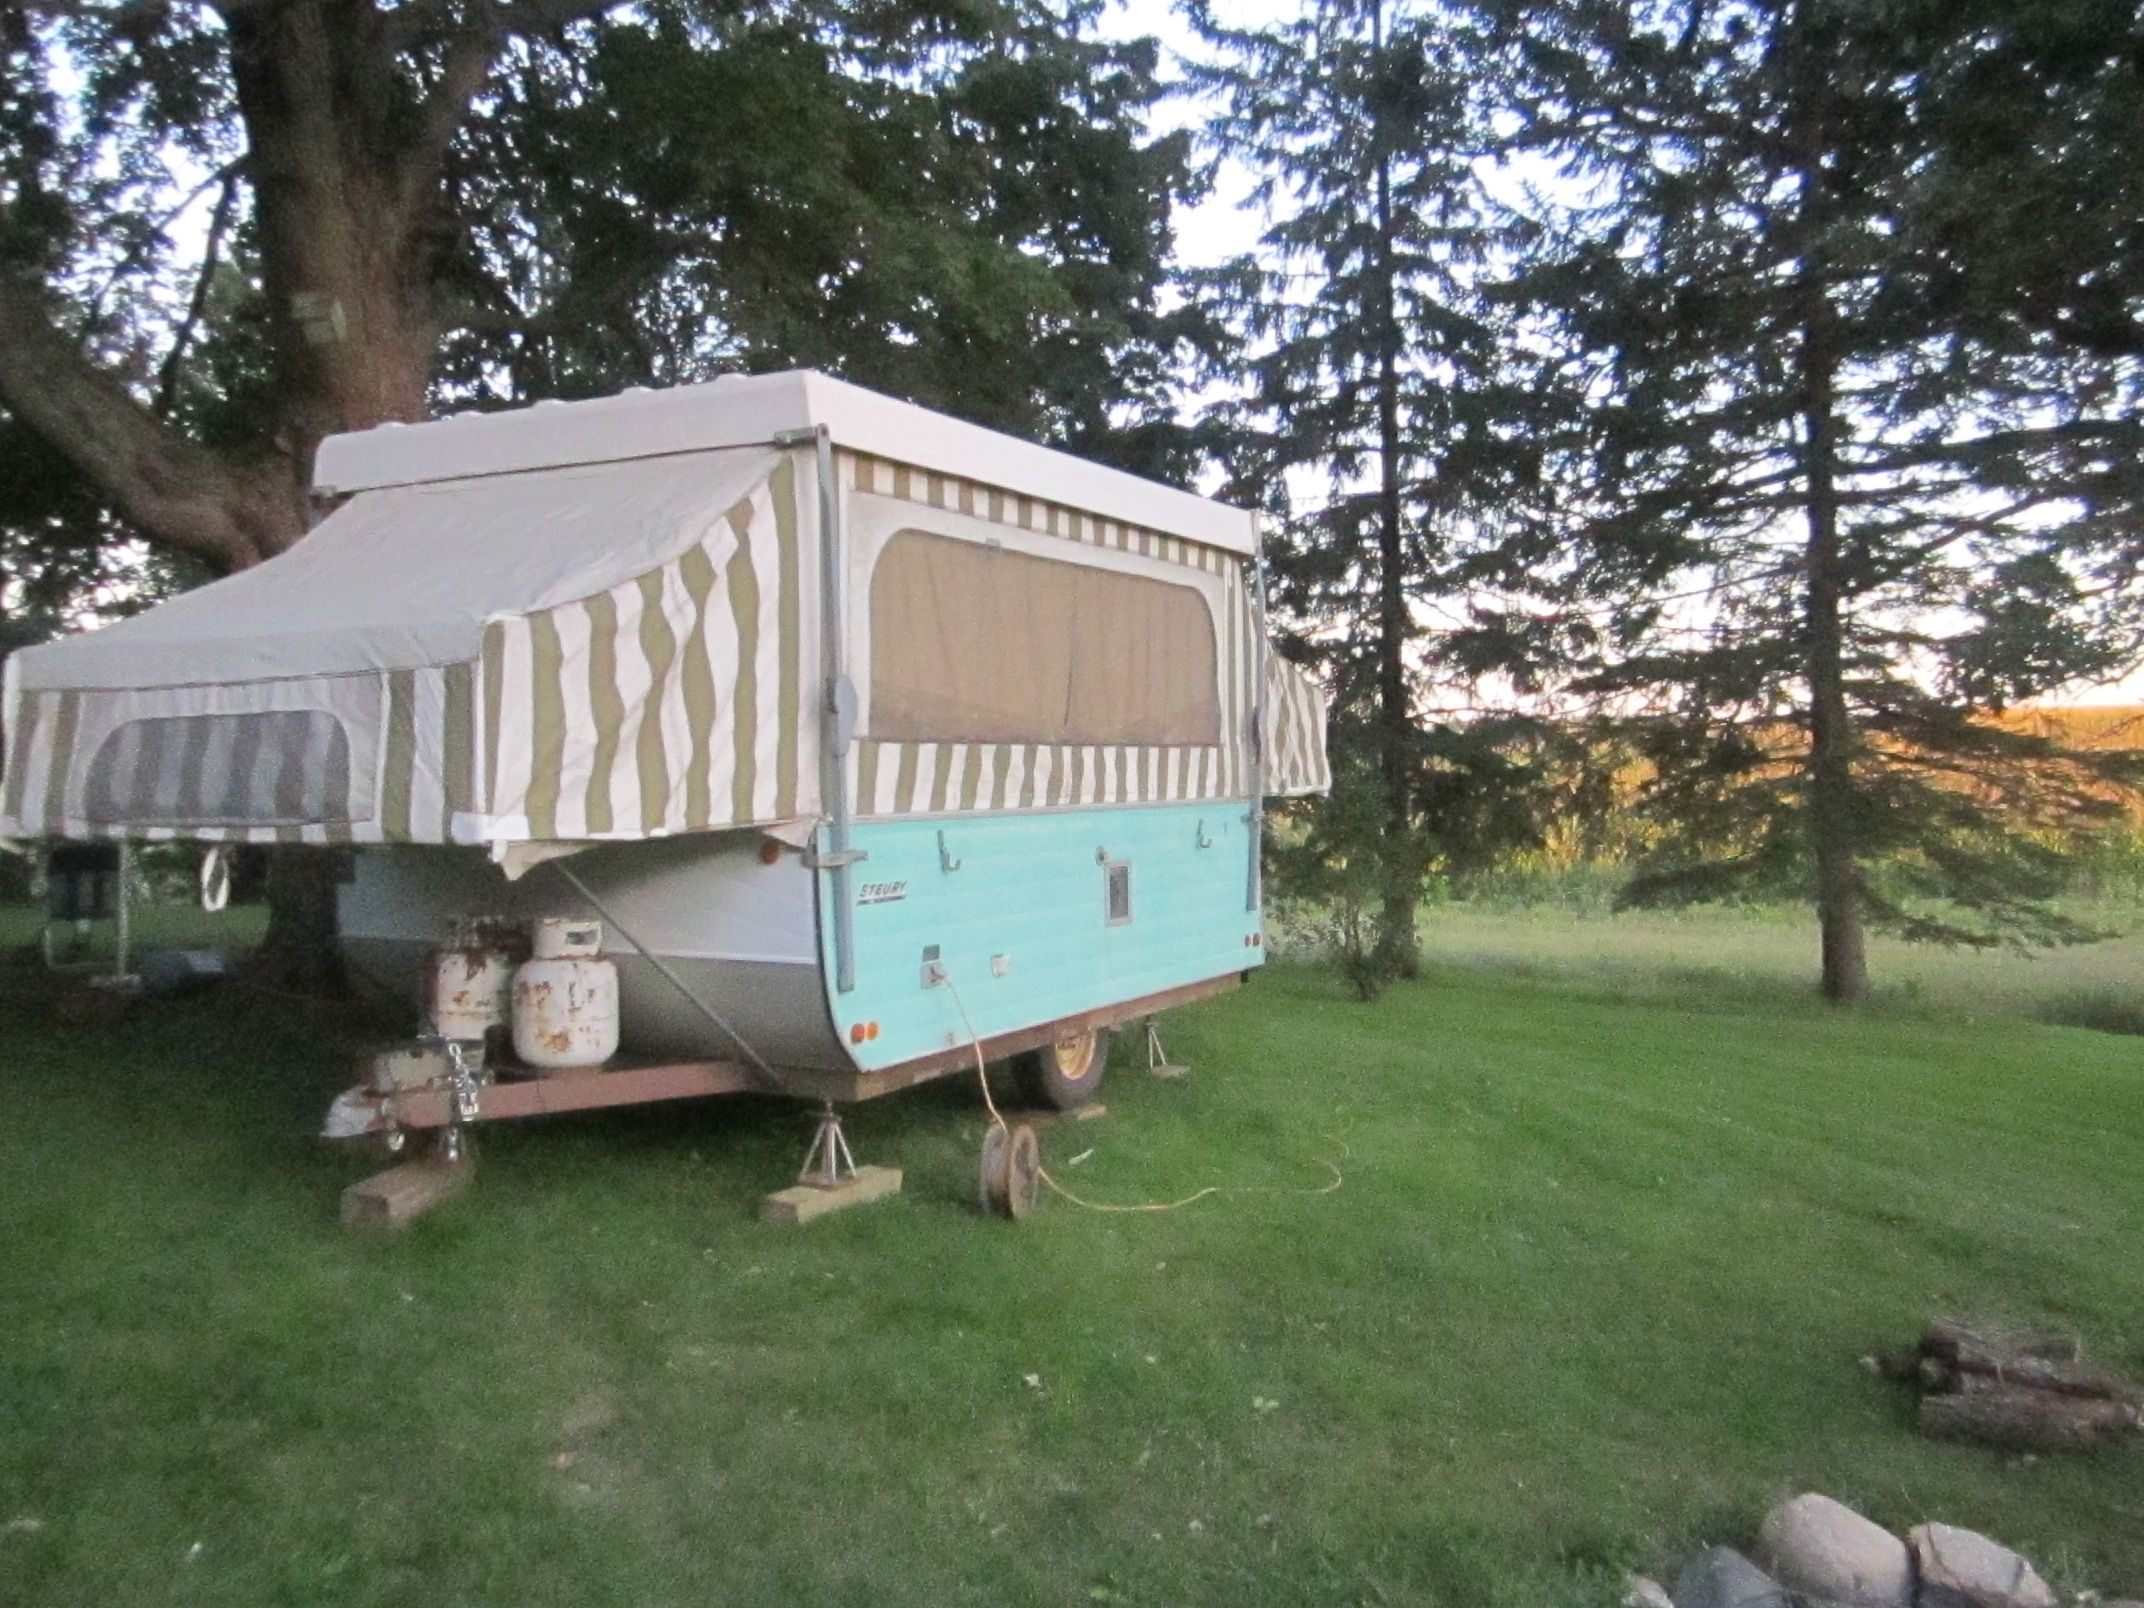 1970 Steury Pop Up Camper Pop Up Camper Small Pop Up Campers